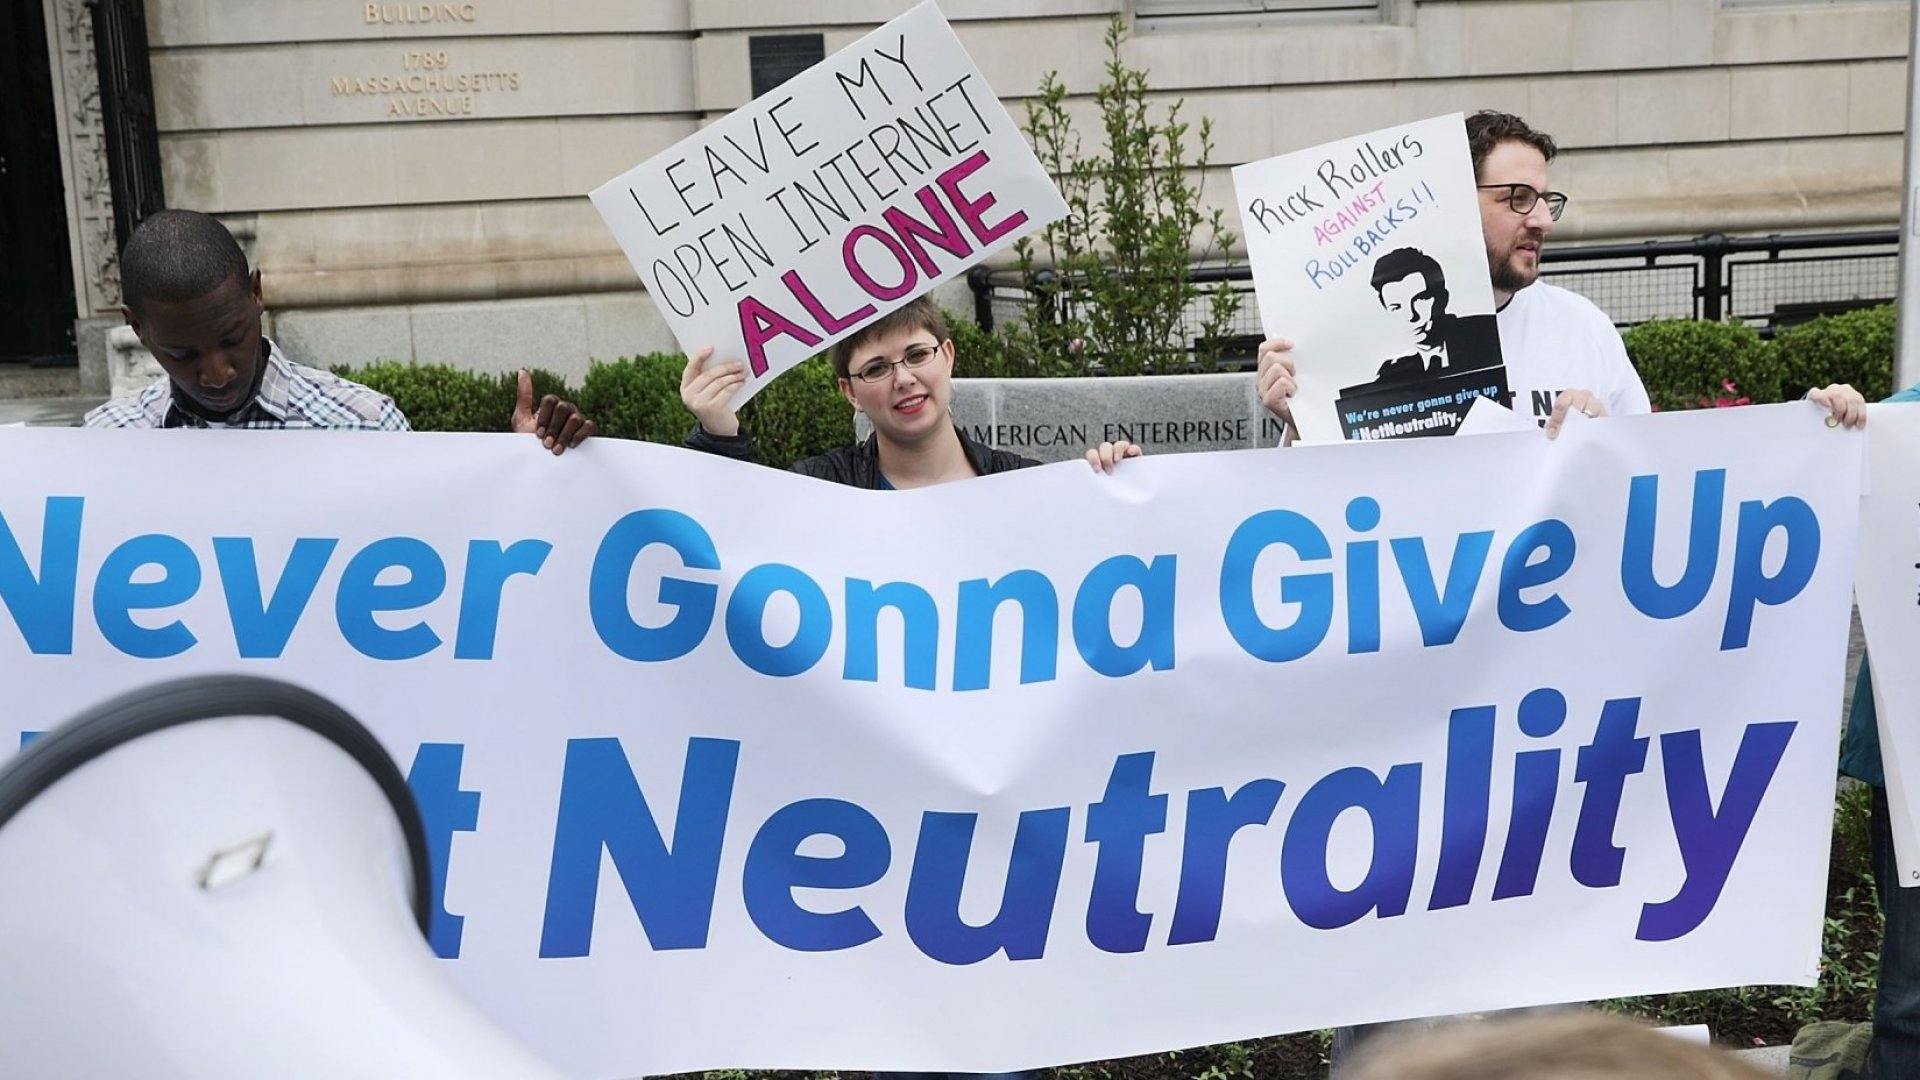 Losing Net Neutrality Could Destroy Internet Marketing: What You Need to Know